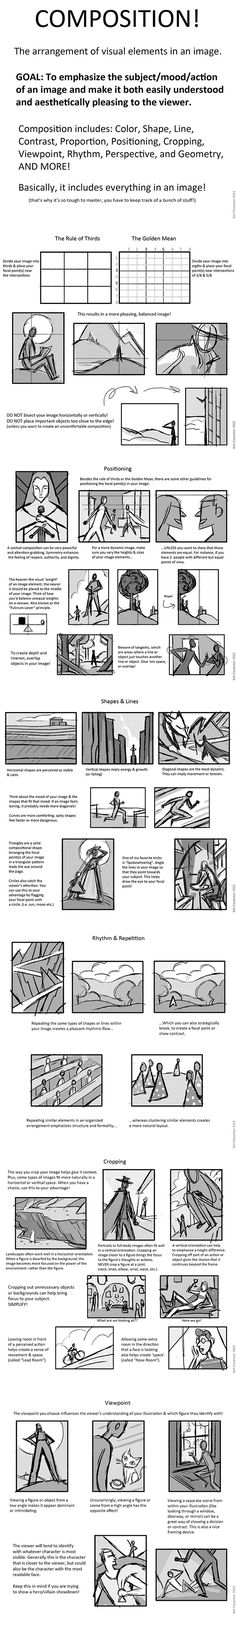 Composition by Kali Ciesemier. Read, draw two quick pics one w/good composition one bad, pass to neighbor, must identify which is good and bad and explain why. Prize for most creative composition and best explanation. Drawing Lessons, Drawing Techniques, Drawing Tutorials, Art Tutorials, Art Lessons, Drawing Tips, Painting Tutorials, Storyboard, Comic Sketch